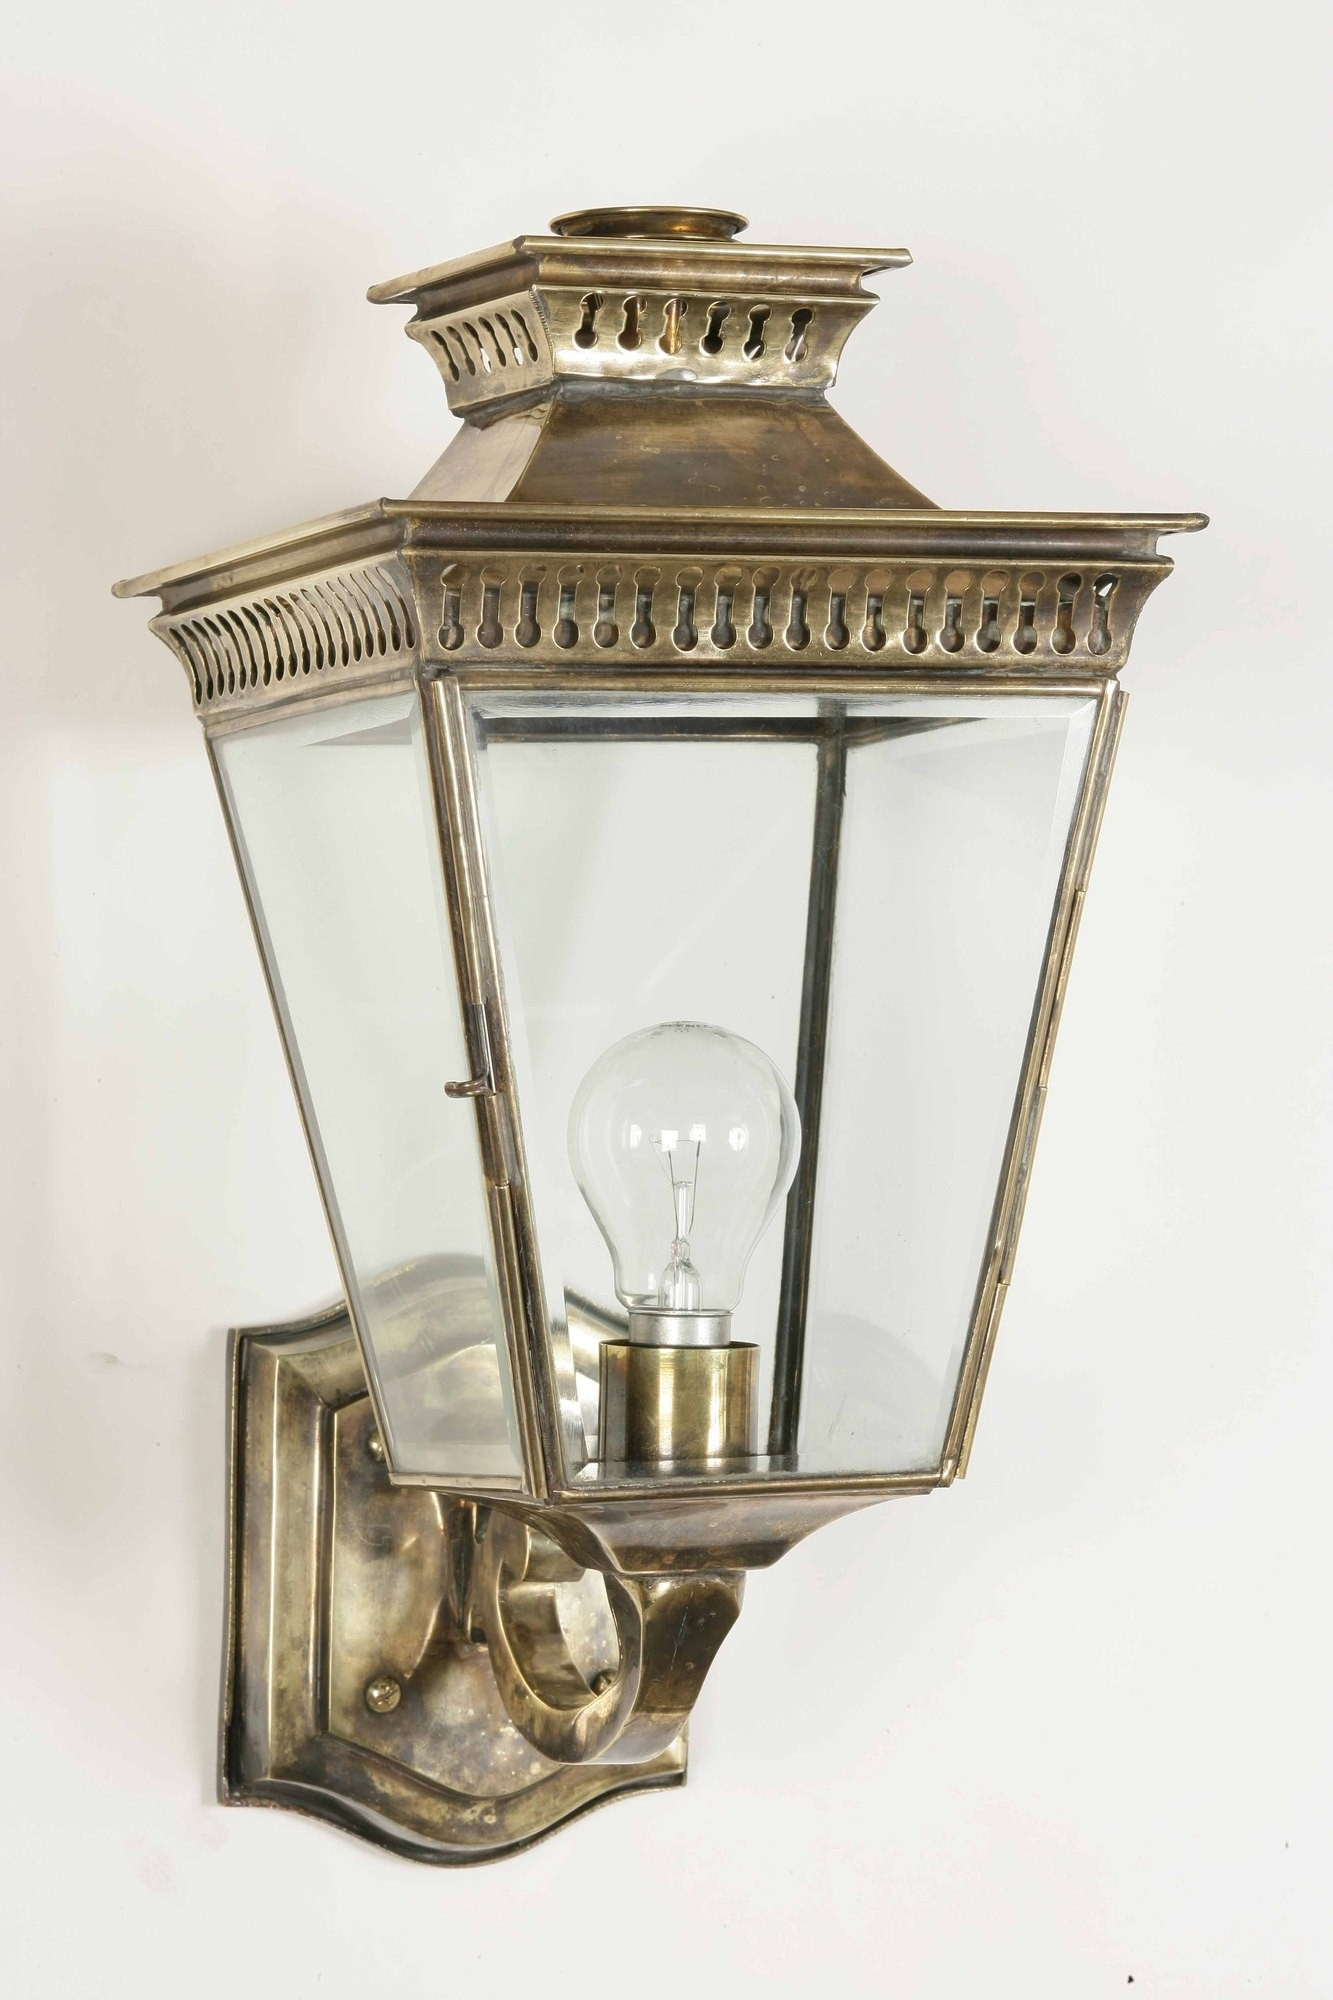 Vintage Outdoor Light Fixtures 1940s Porch Industrial Lighting Led Within Vintage Outdoor Lanterns (View 5 of 20)